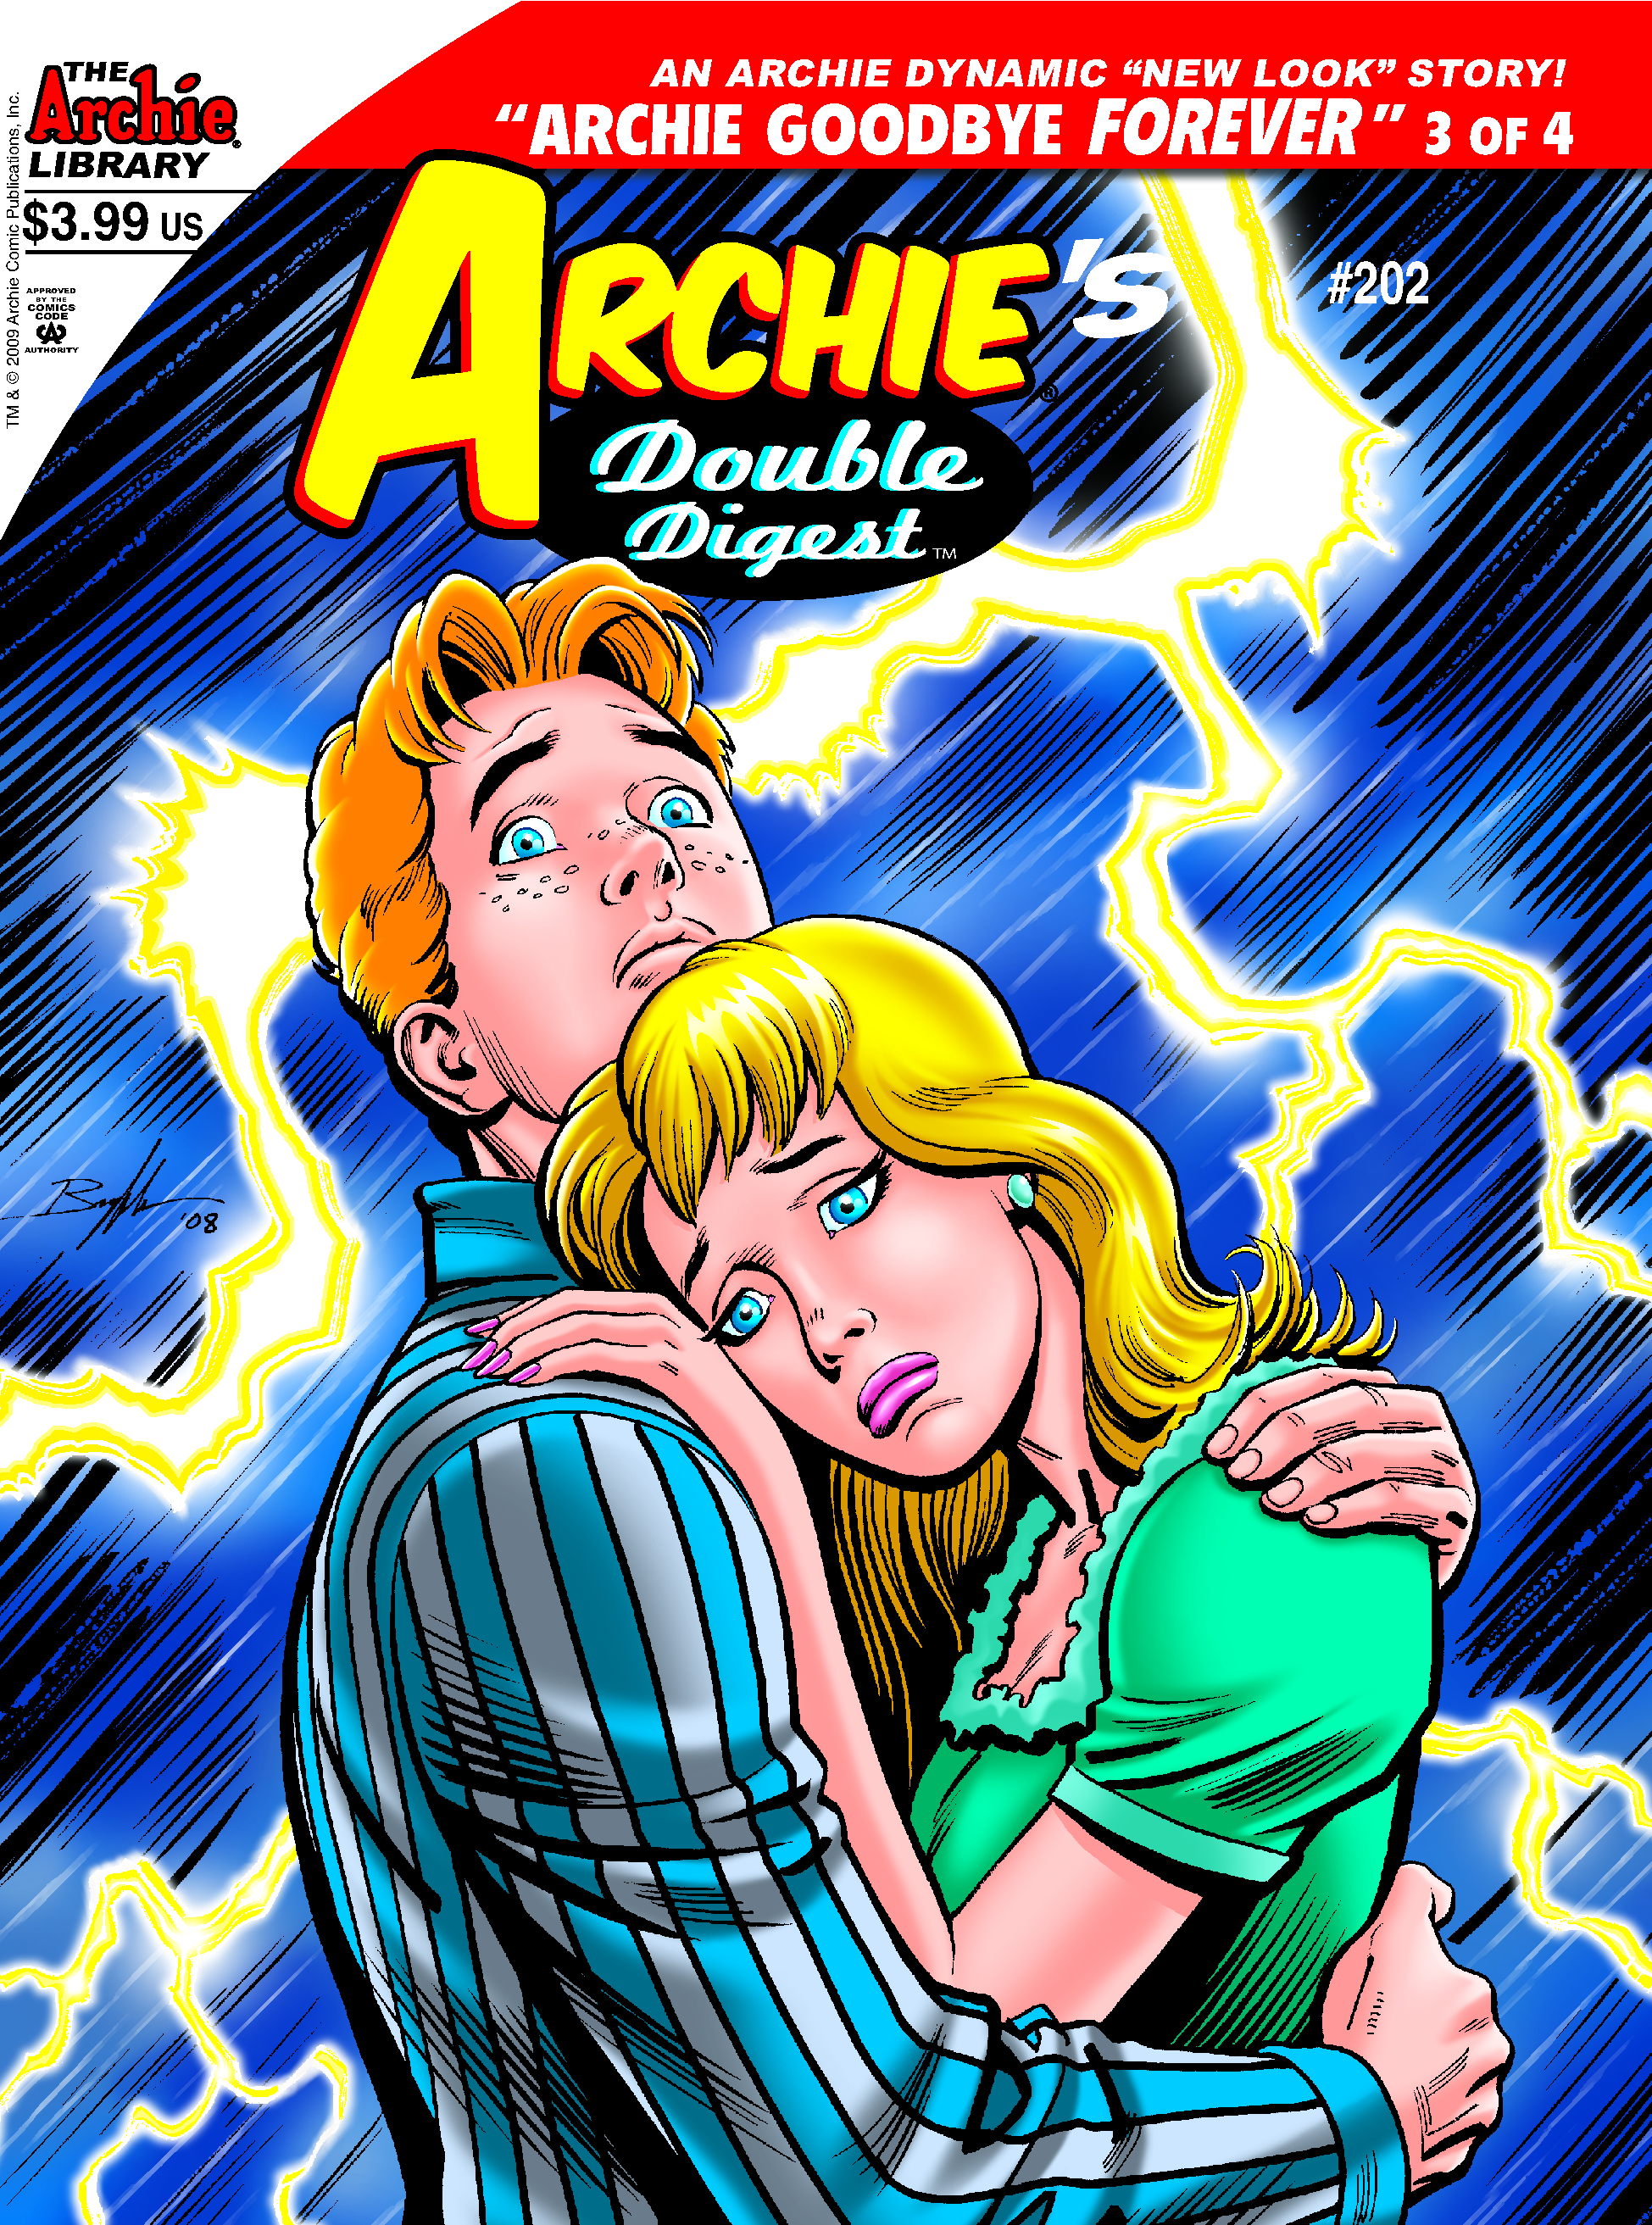 ARCHIE DOUBLE DIGEST #202